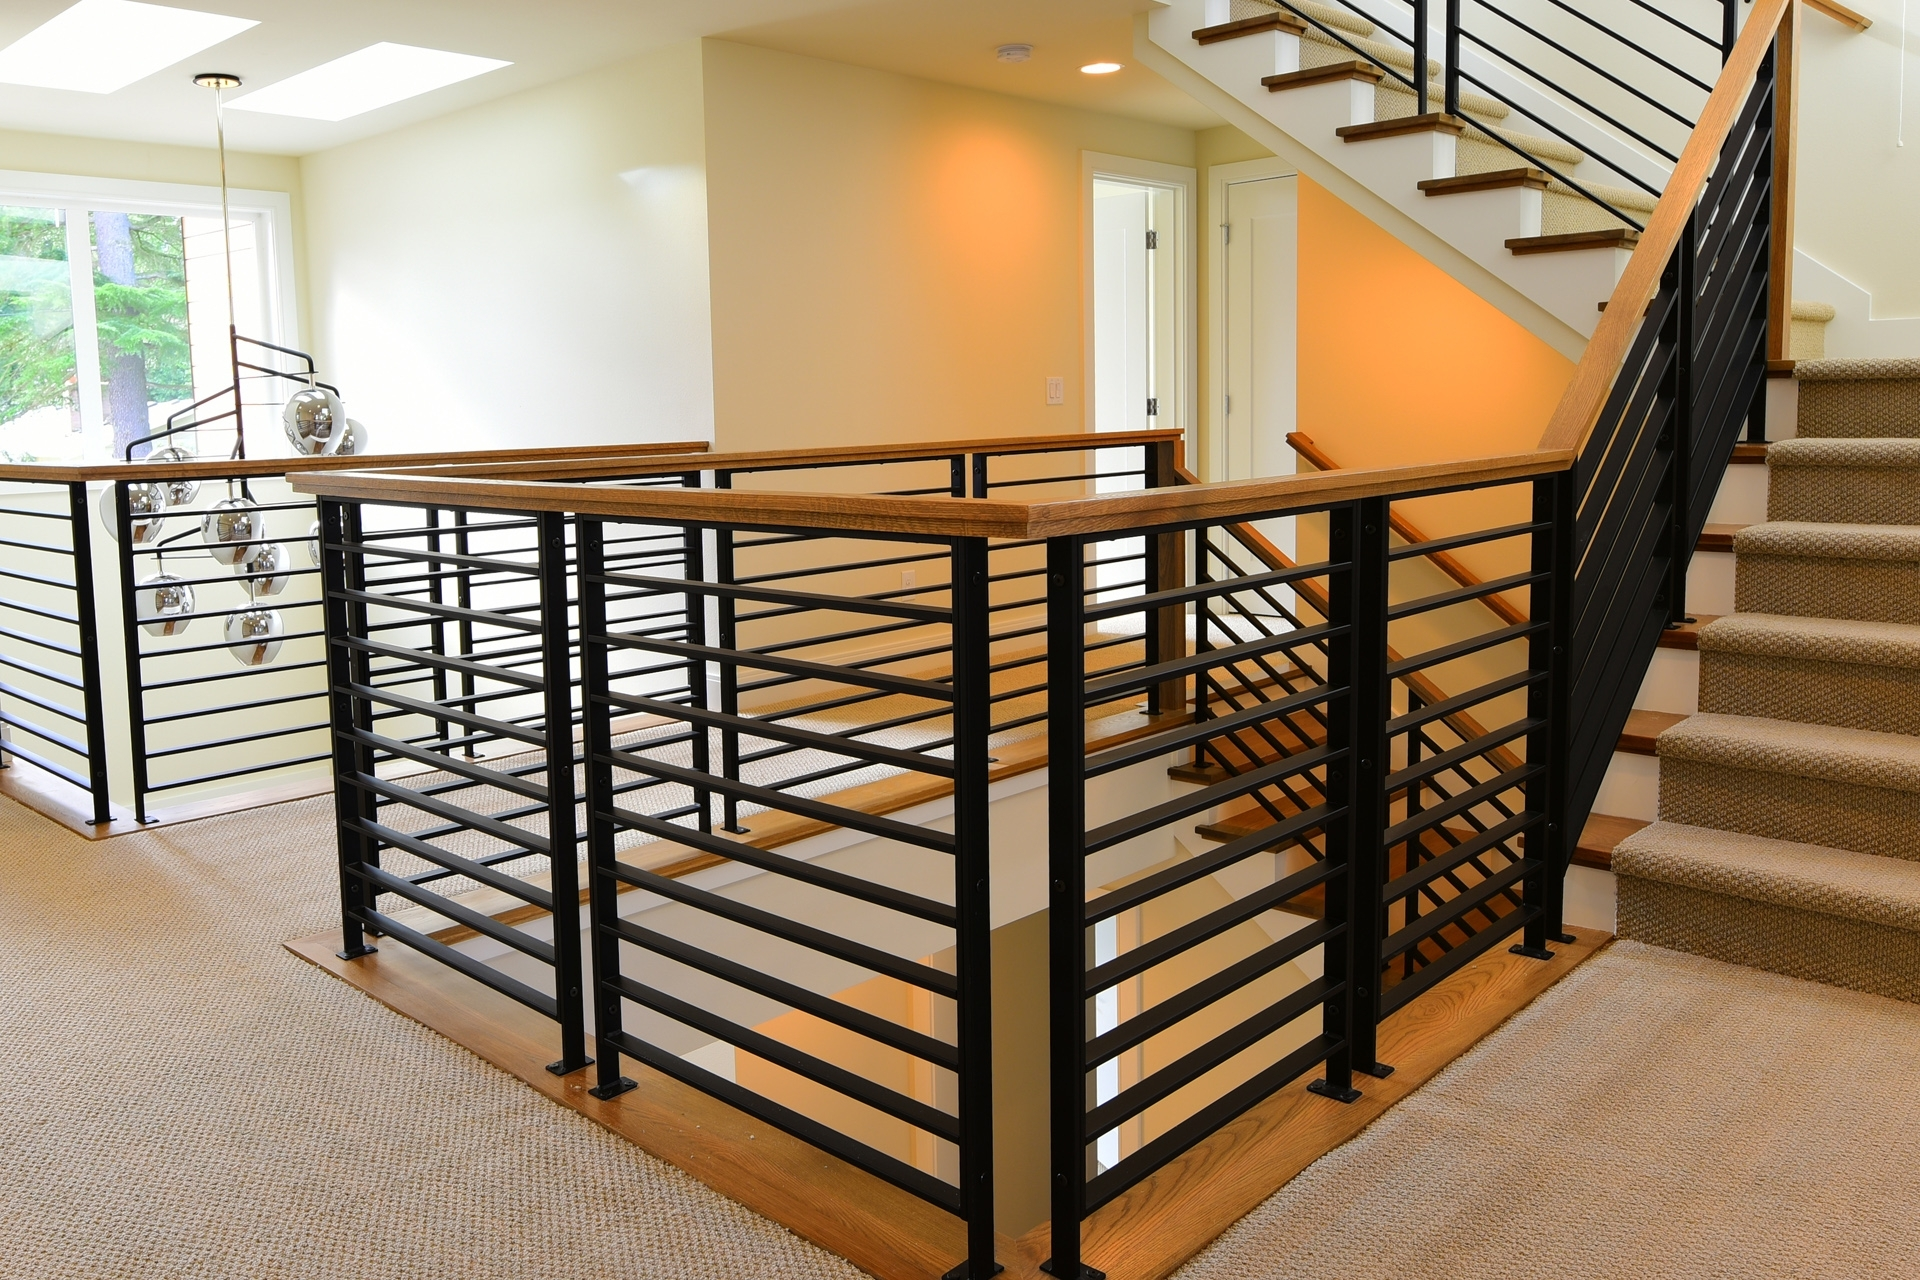 Stair Systems Stairs Stair Parts Newels Balusters And | Black Iron Pipe Handrail | Cast Iron | Horizontal Pipe | Paint Pipe | Stair Outdoor Decatur | Railing Aluminium Pipe